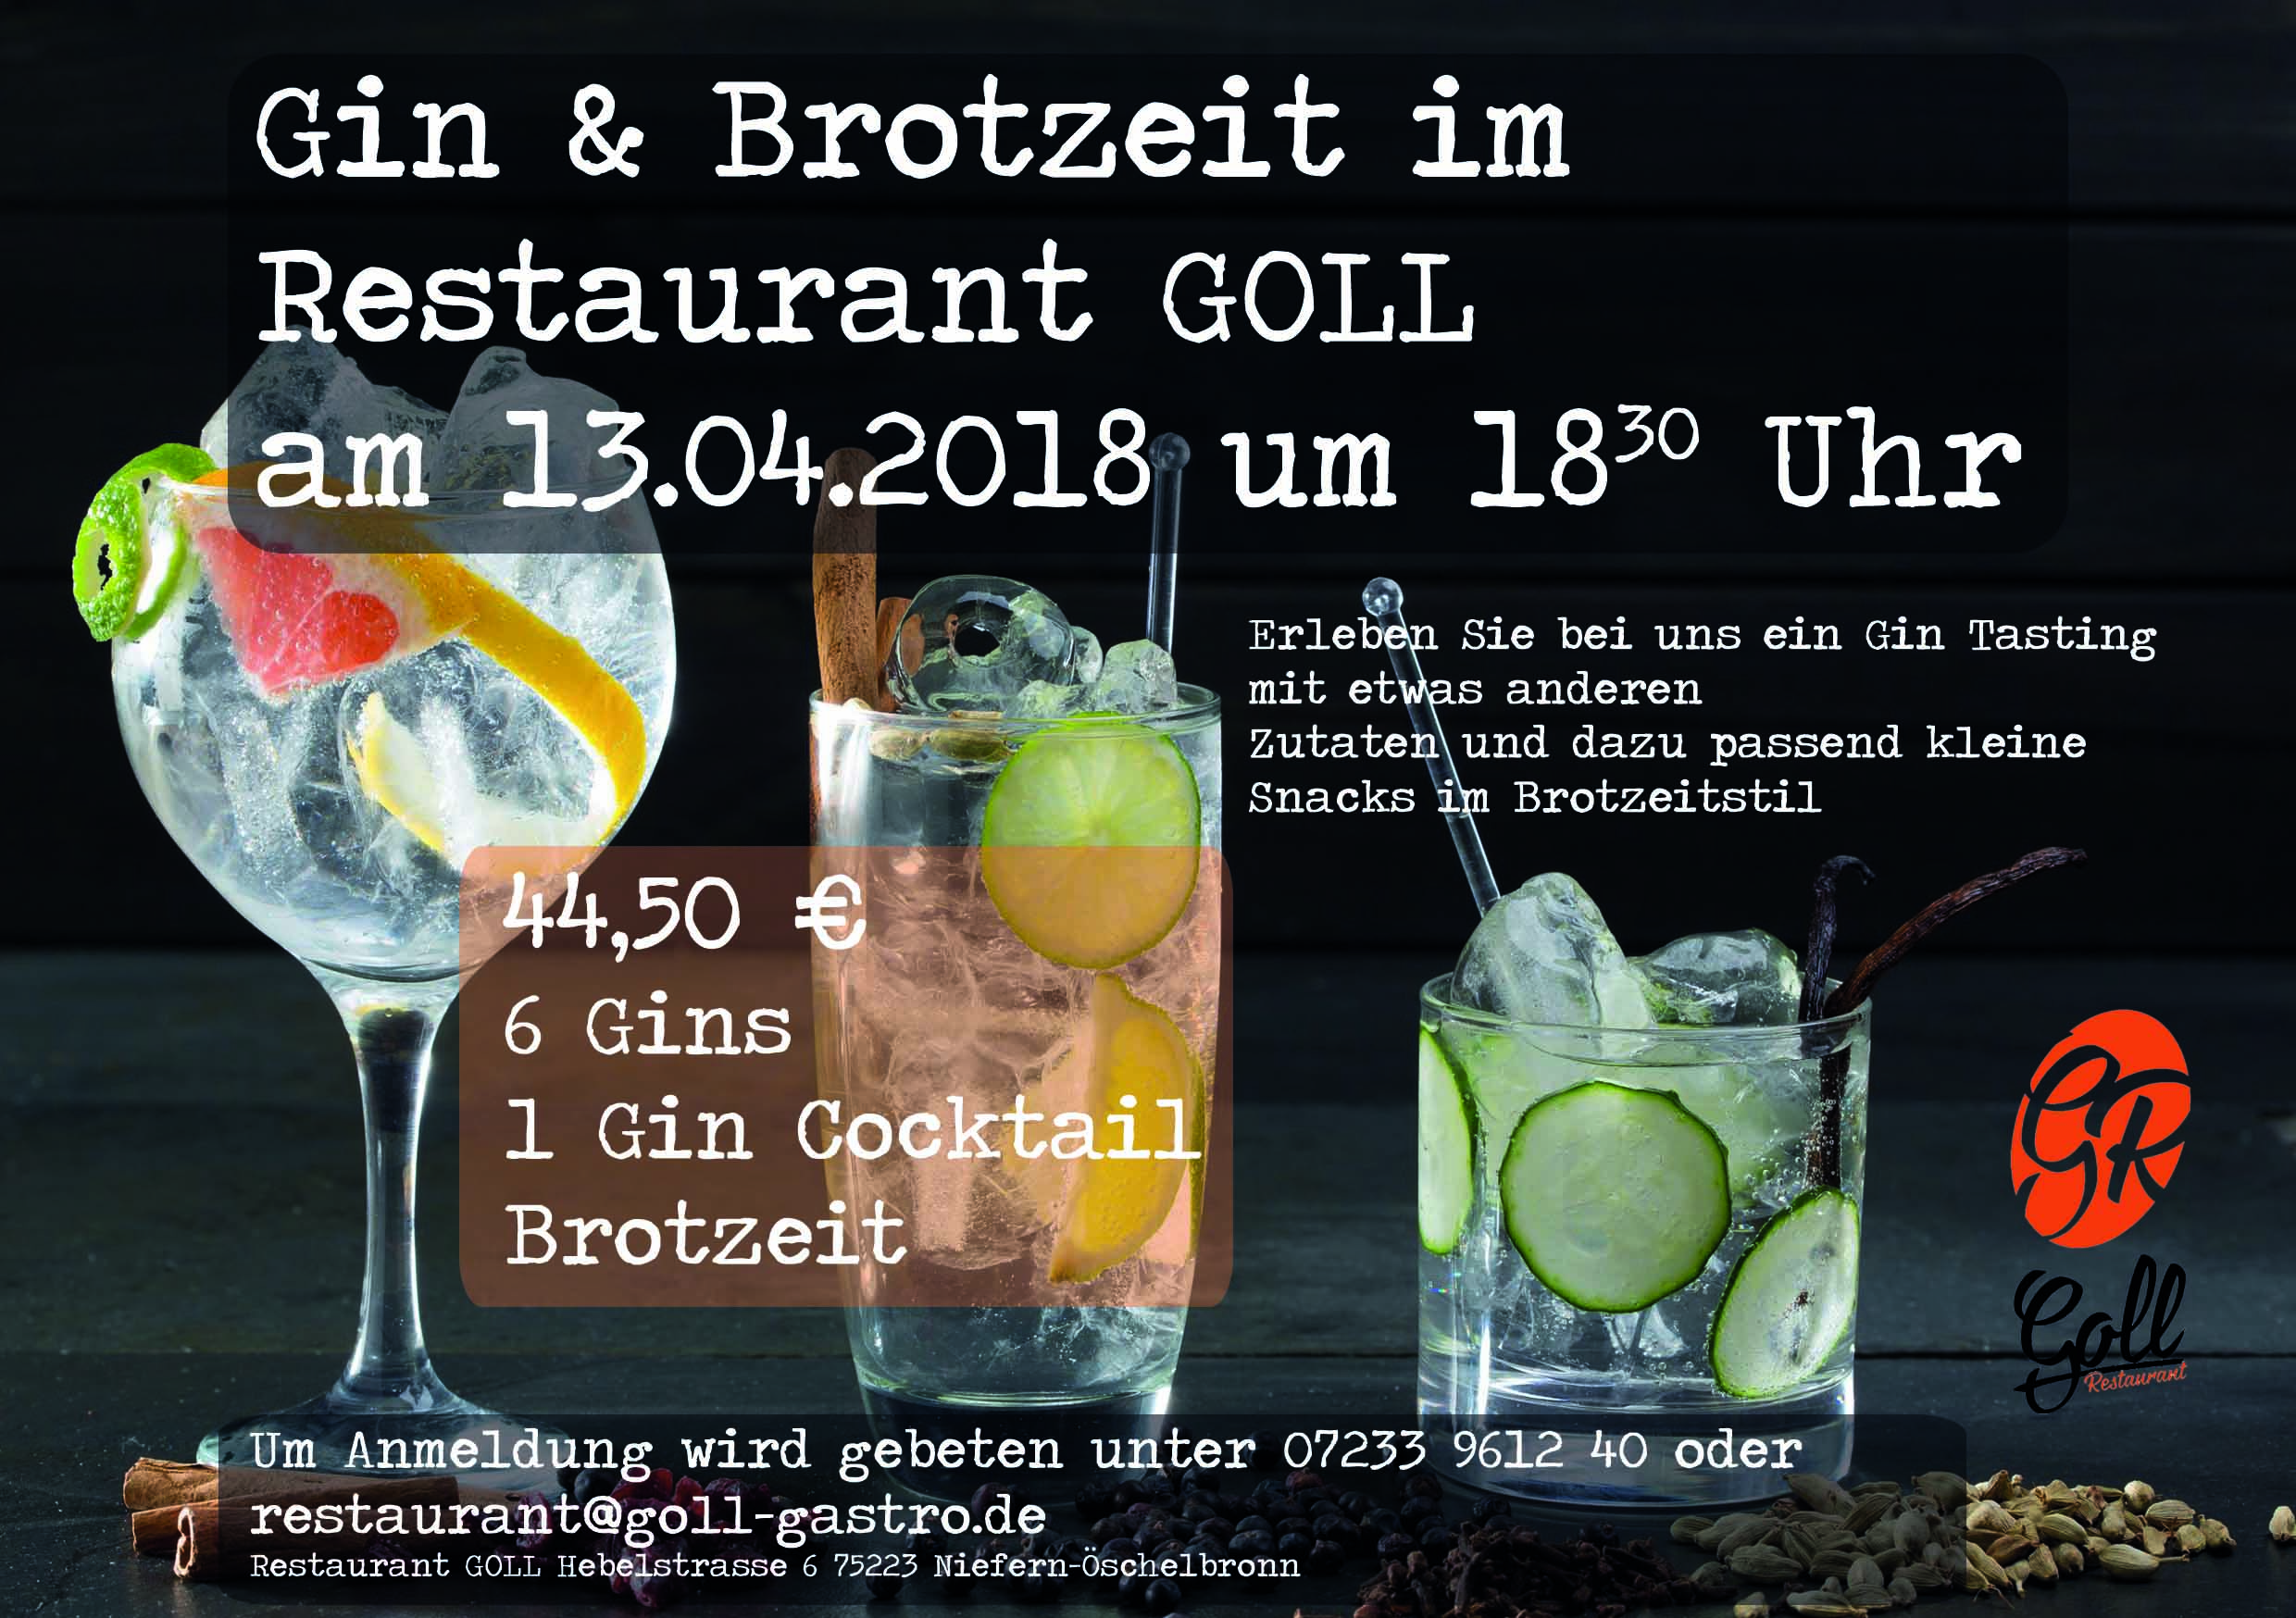 Gintasting & Brotzei